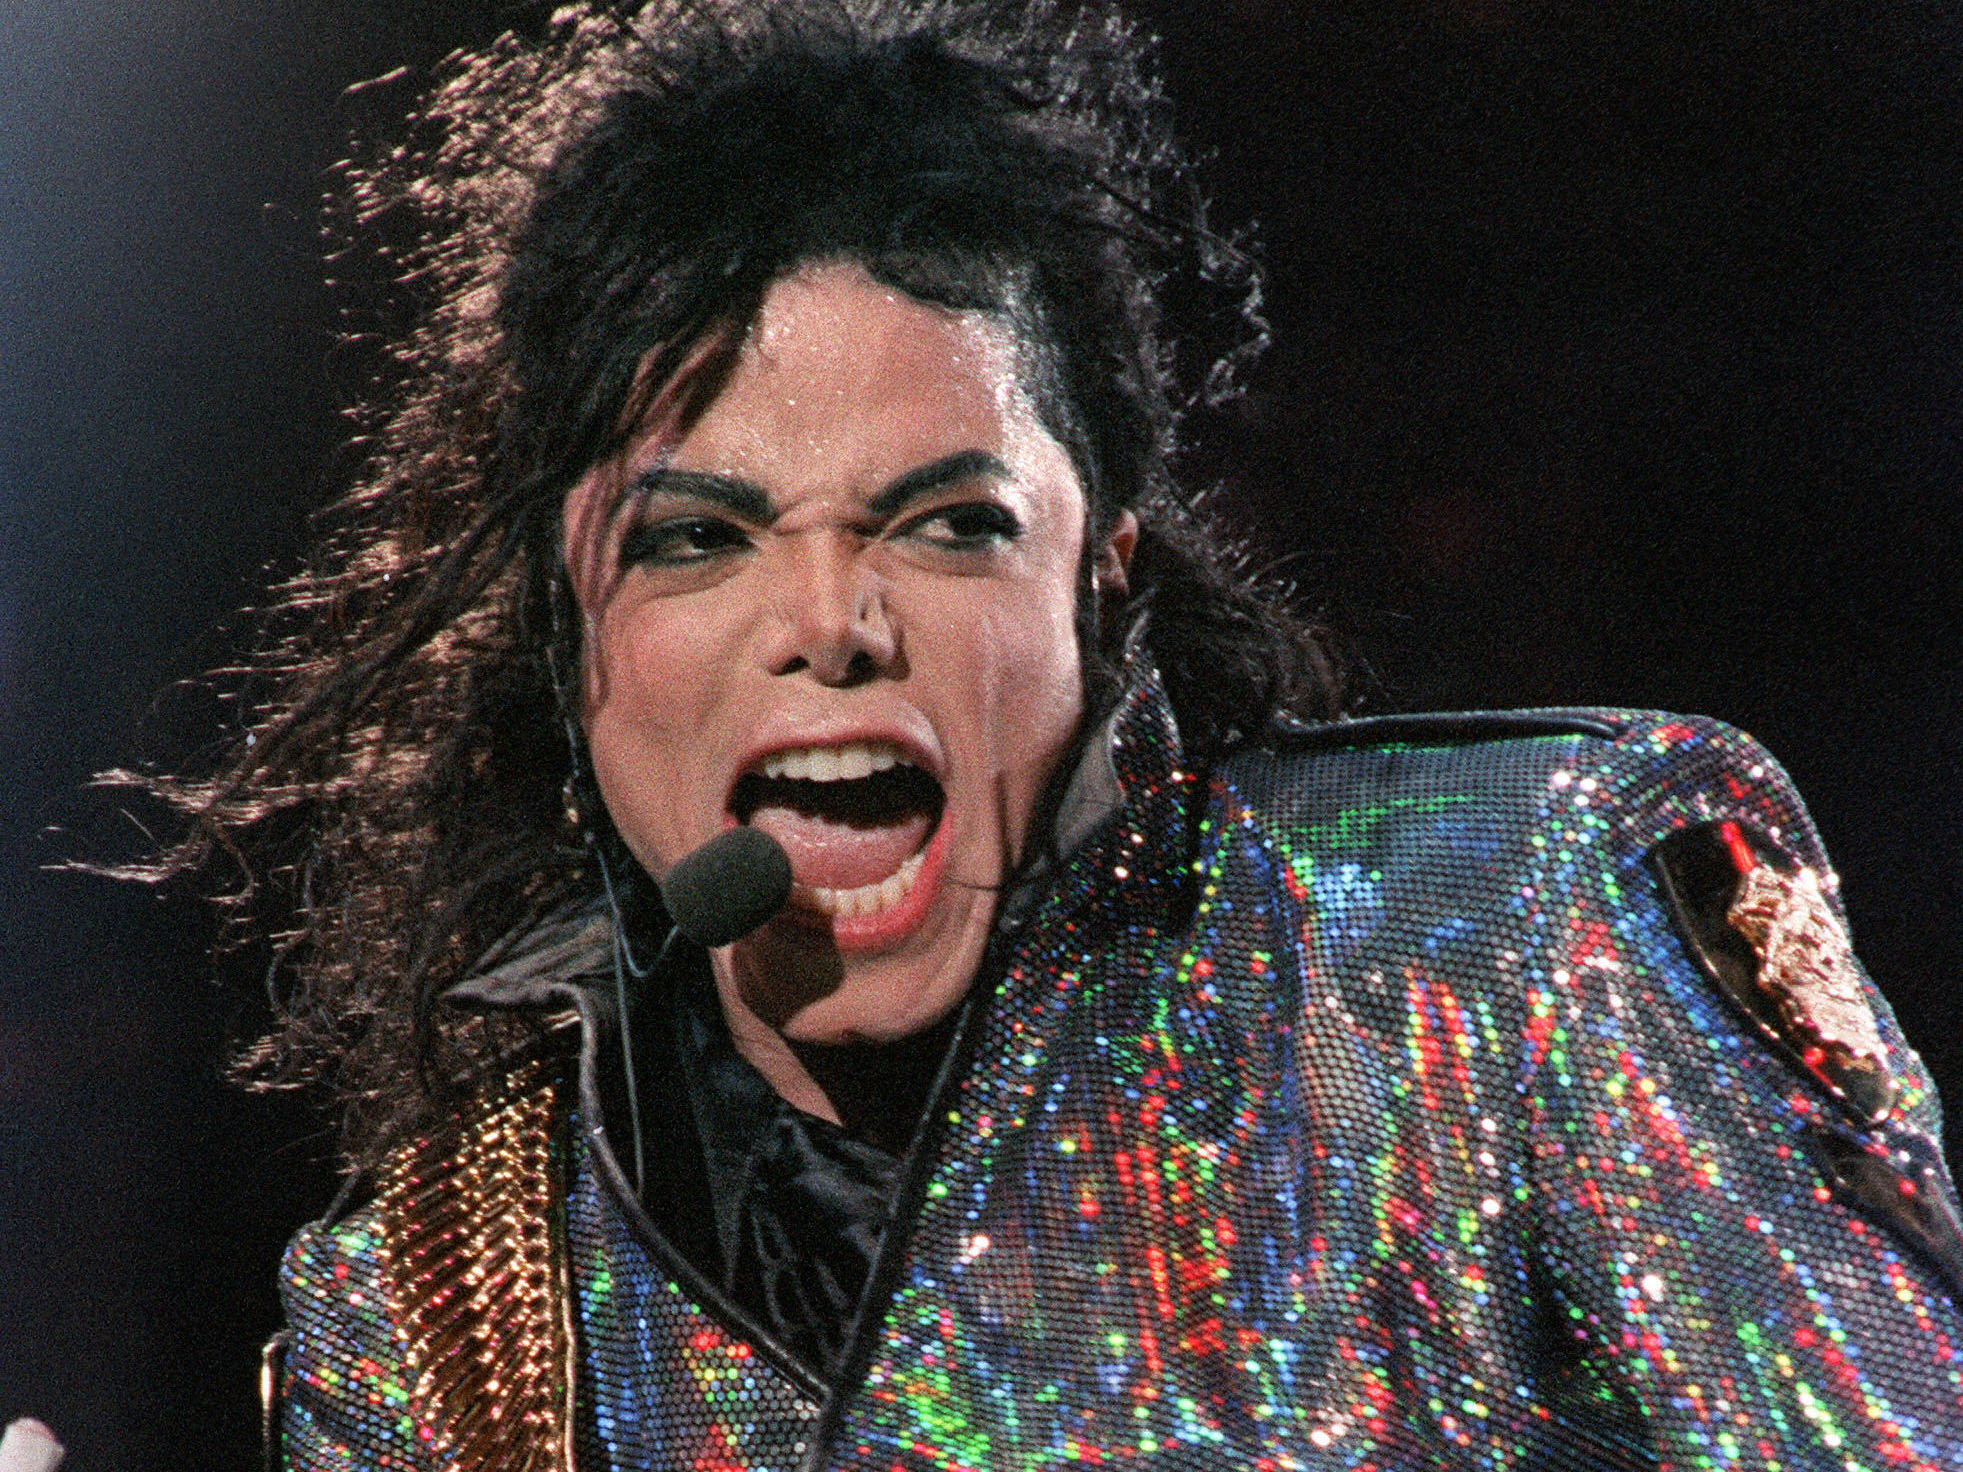 Michael jackson photo gallery high quality pics of for 1234 get on the dance floor full song